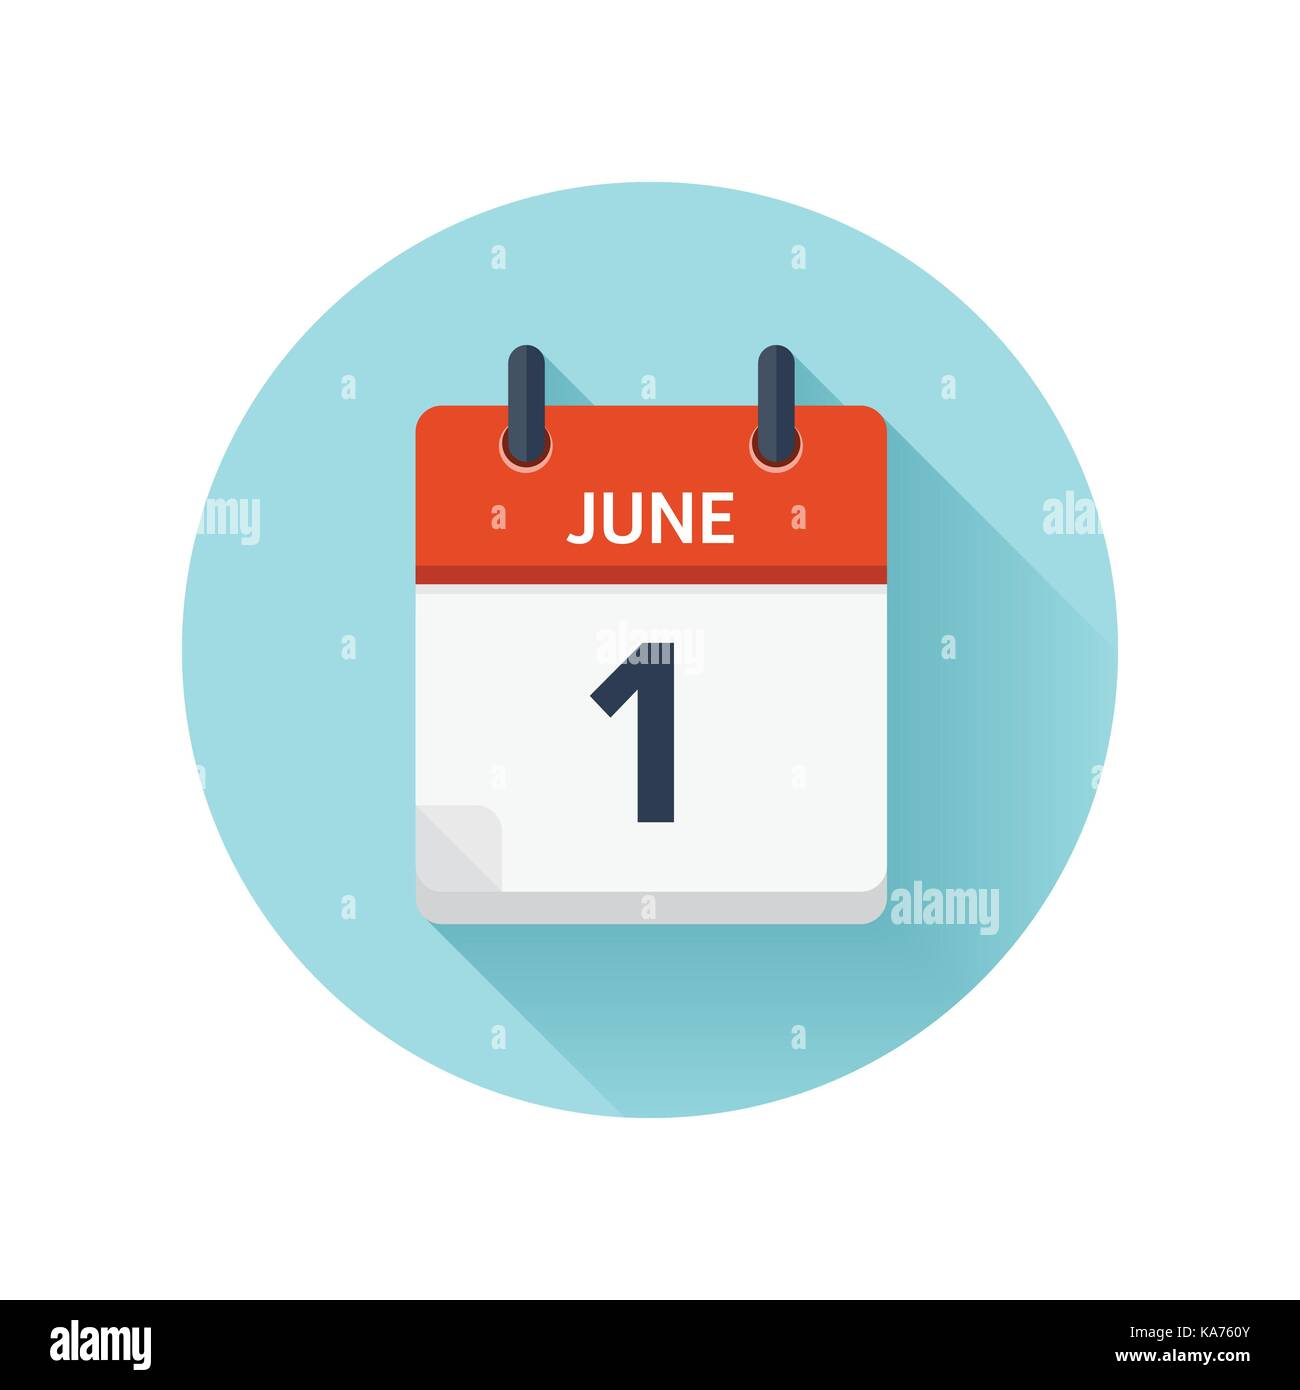 June 1. Vector flat daily calendar icon. Date and time, day, month ...